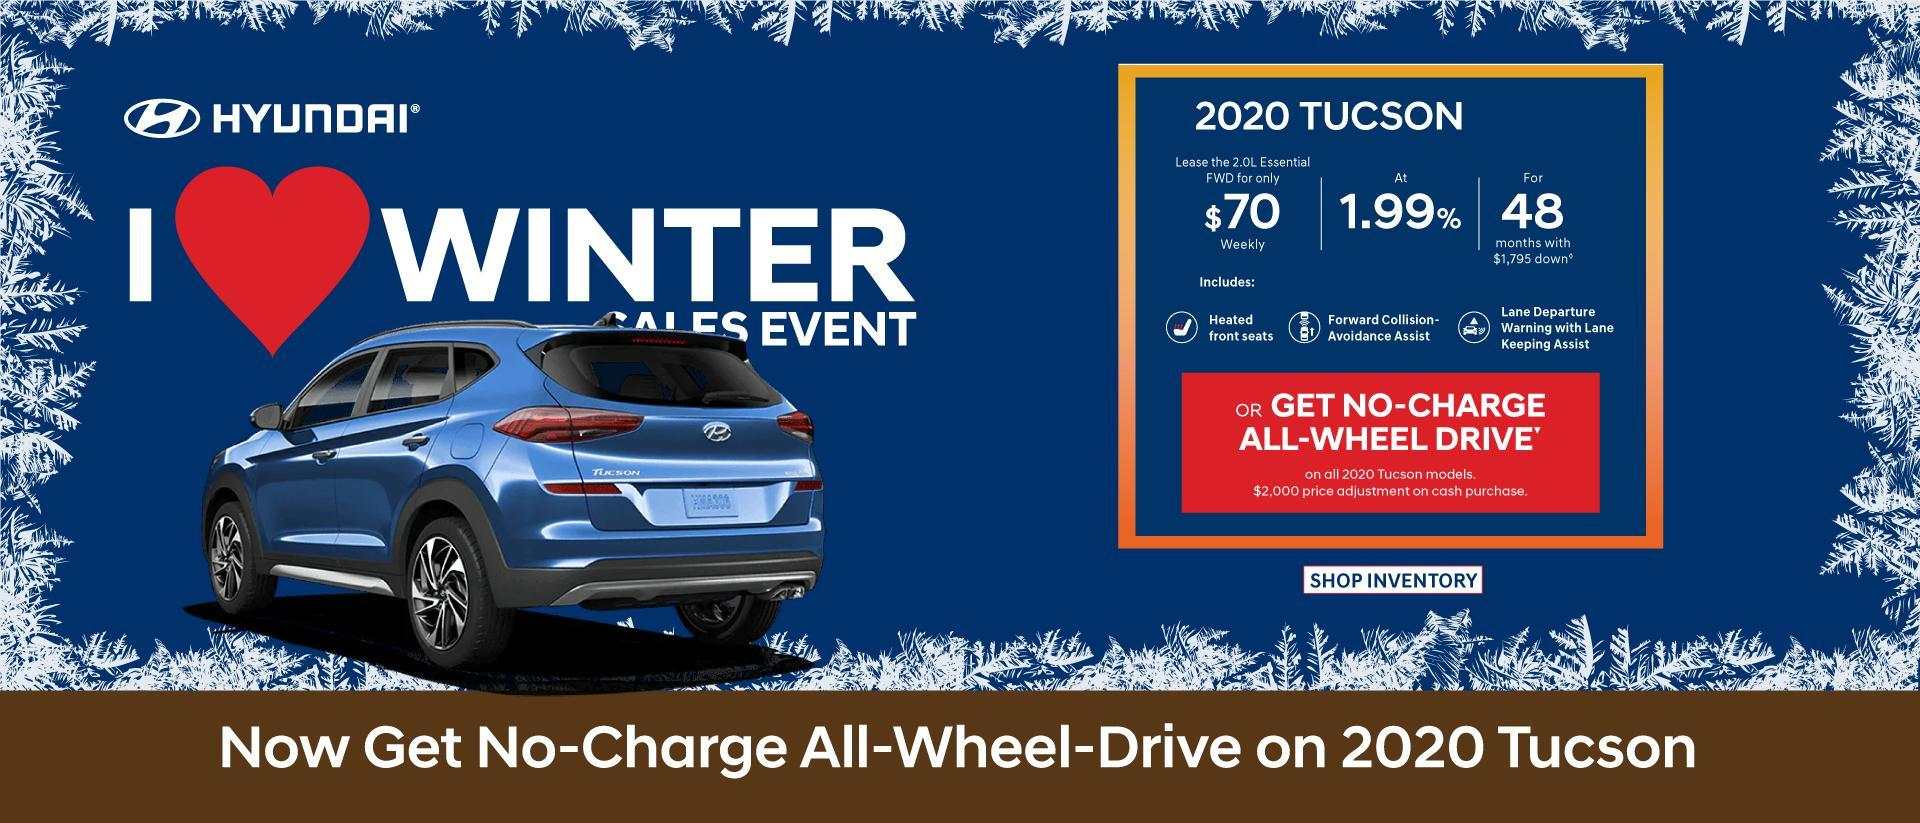 Central Nova Hyundai Tucson Payments 2020